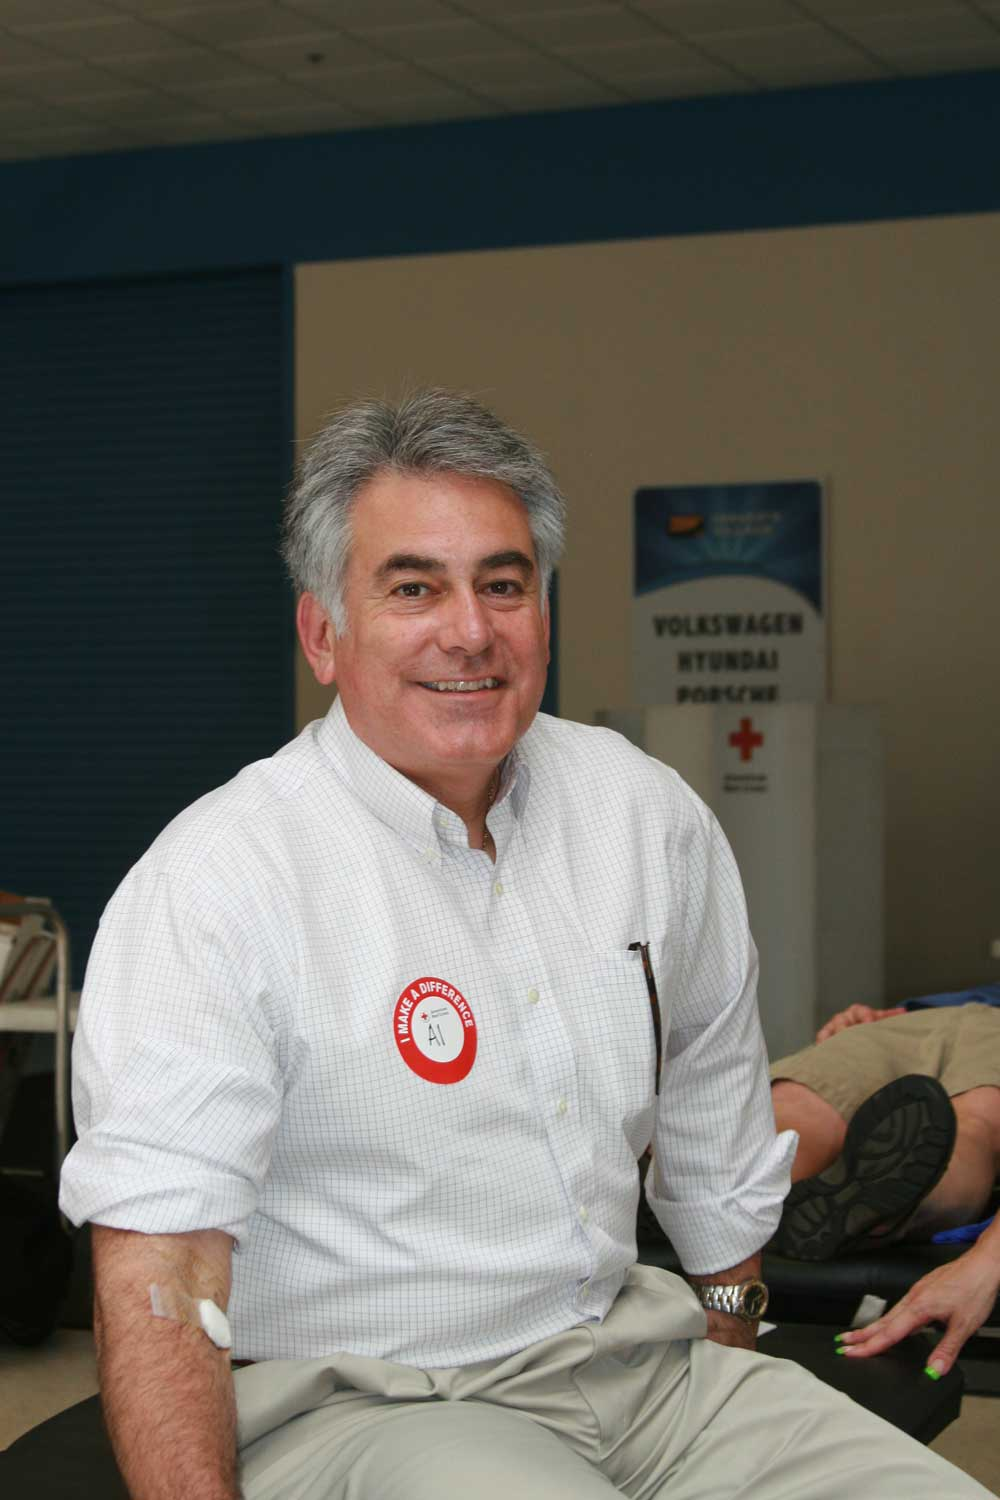 Assemblyman Stirpe donating blood at his 7th Annual Lifesavers Blood Drive and Health Fair.